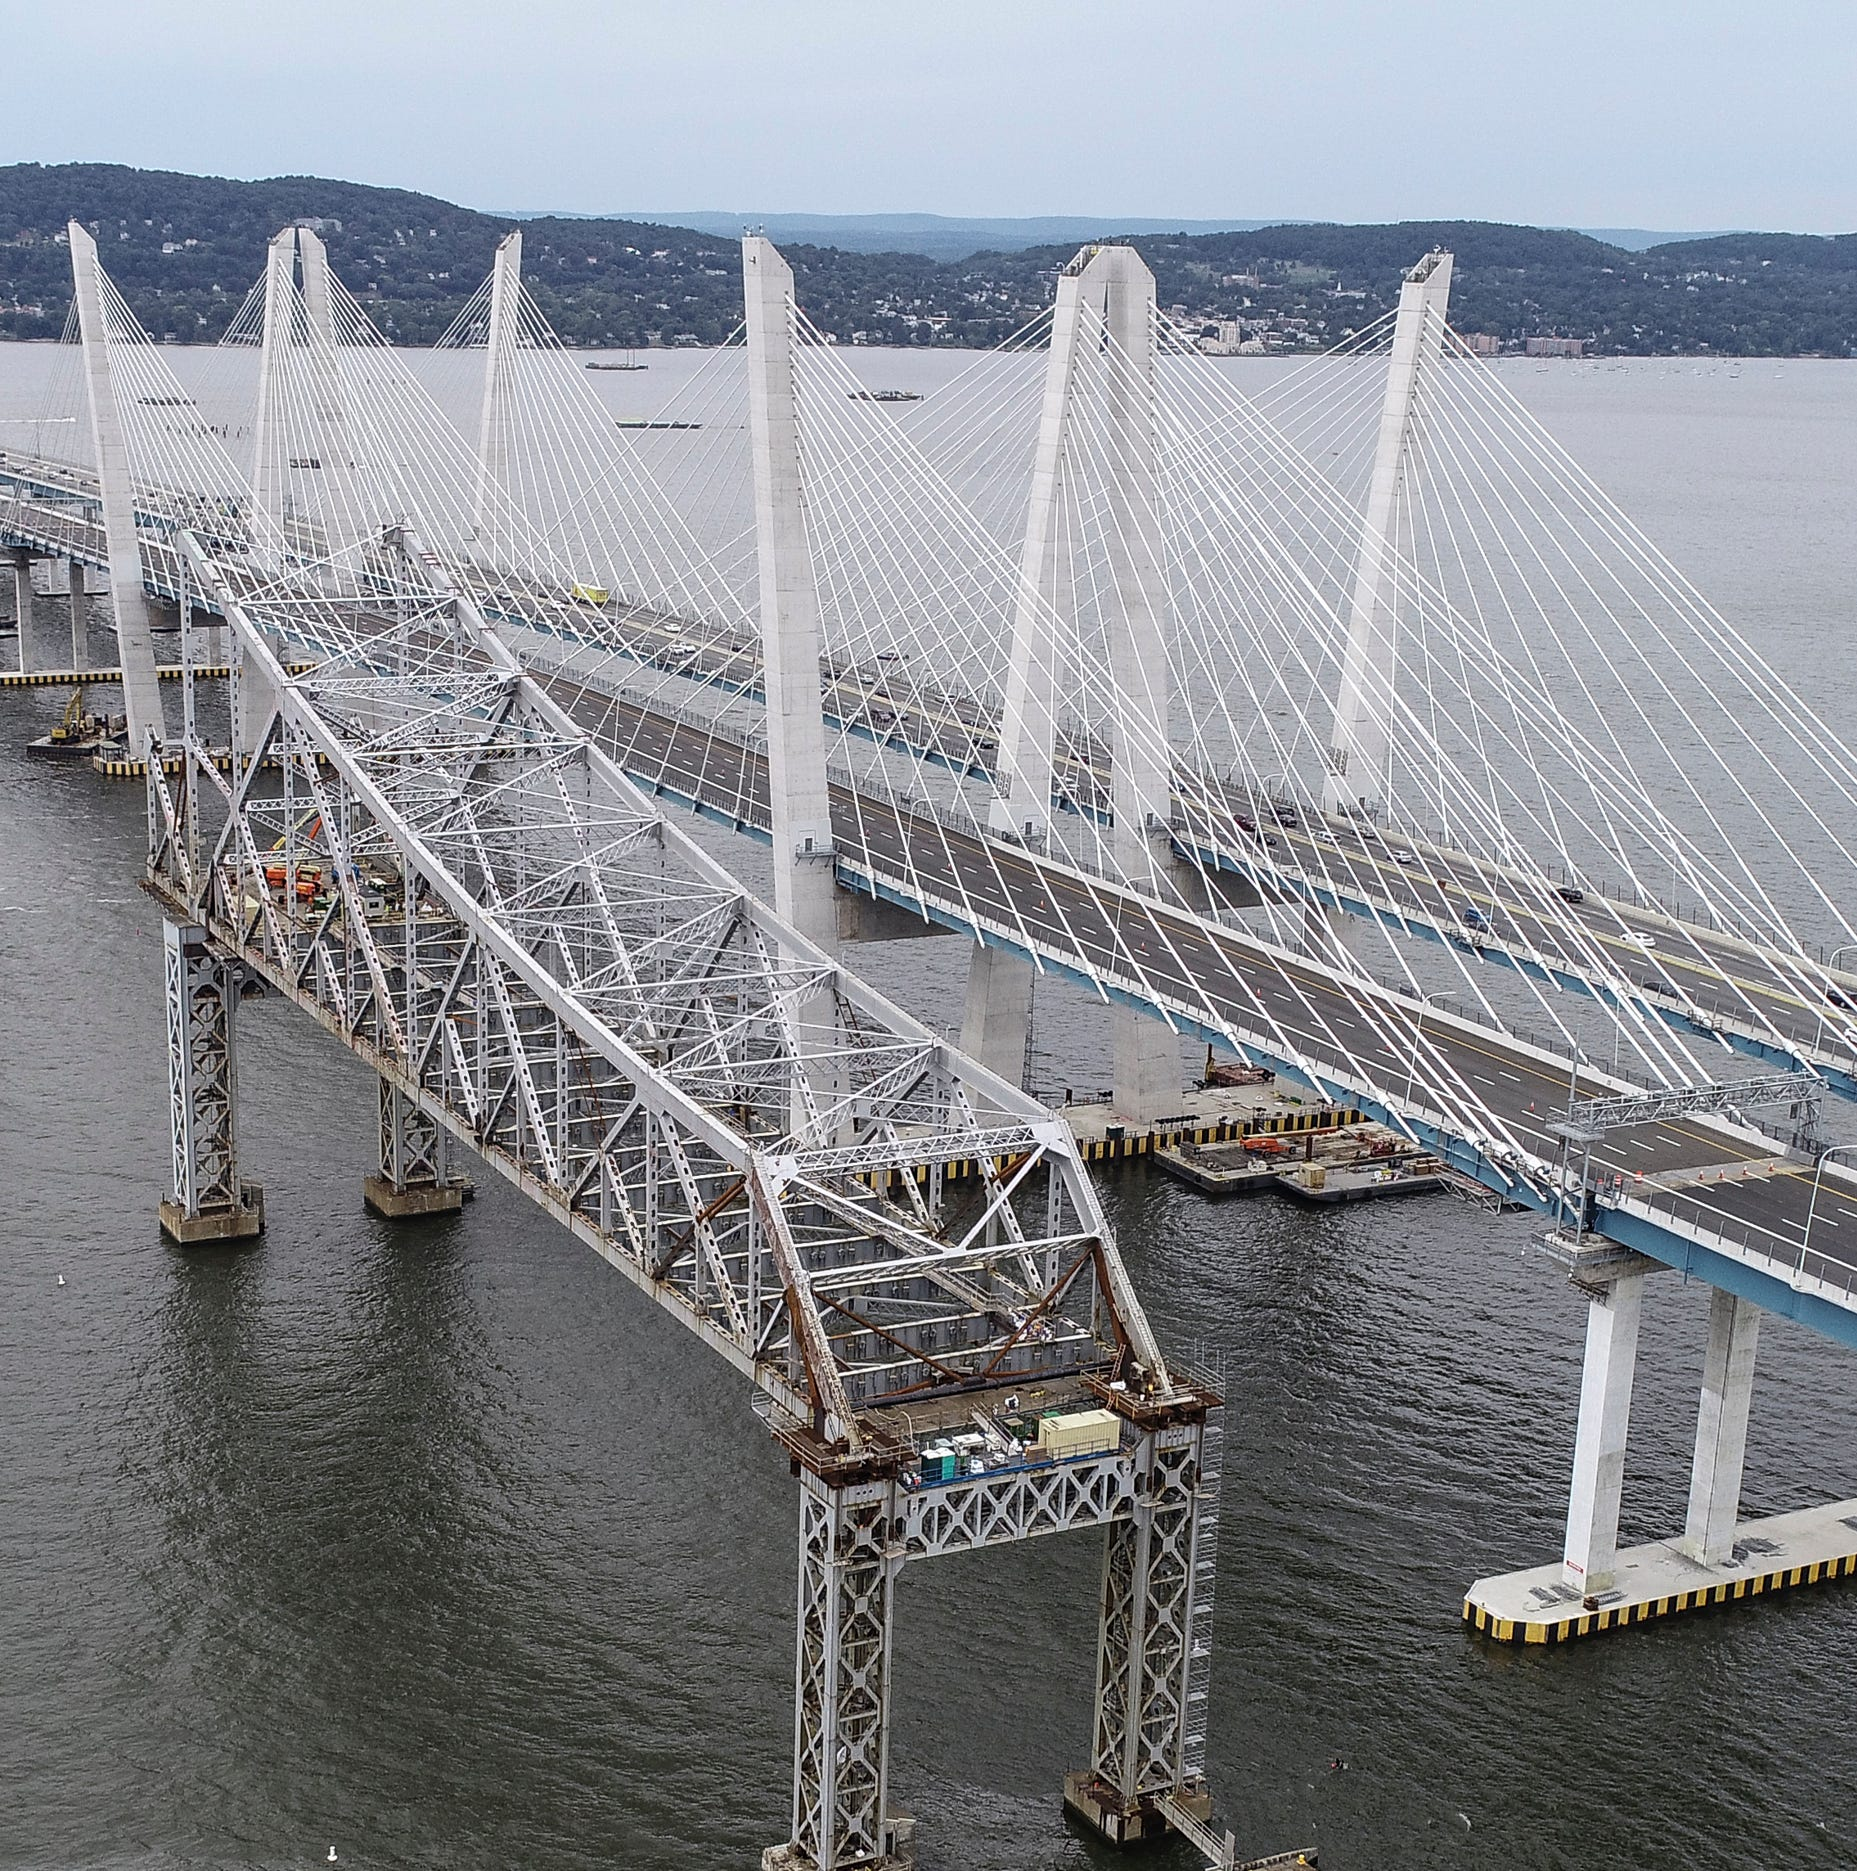 State demanded Cuomo Bridge opened early regardless of cost, 'damage,' letter says